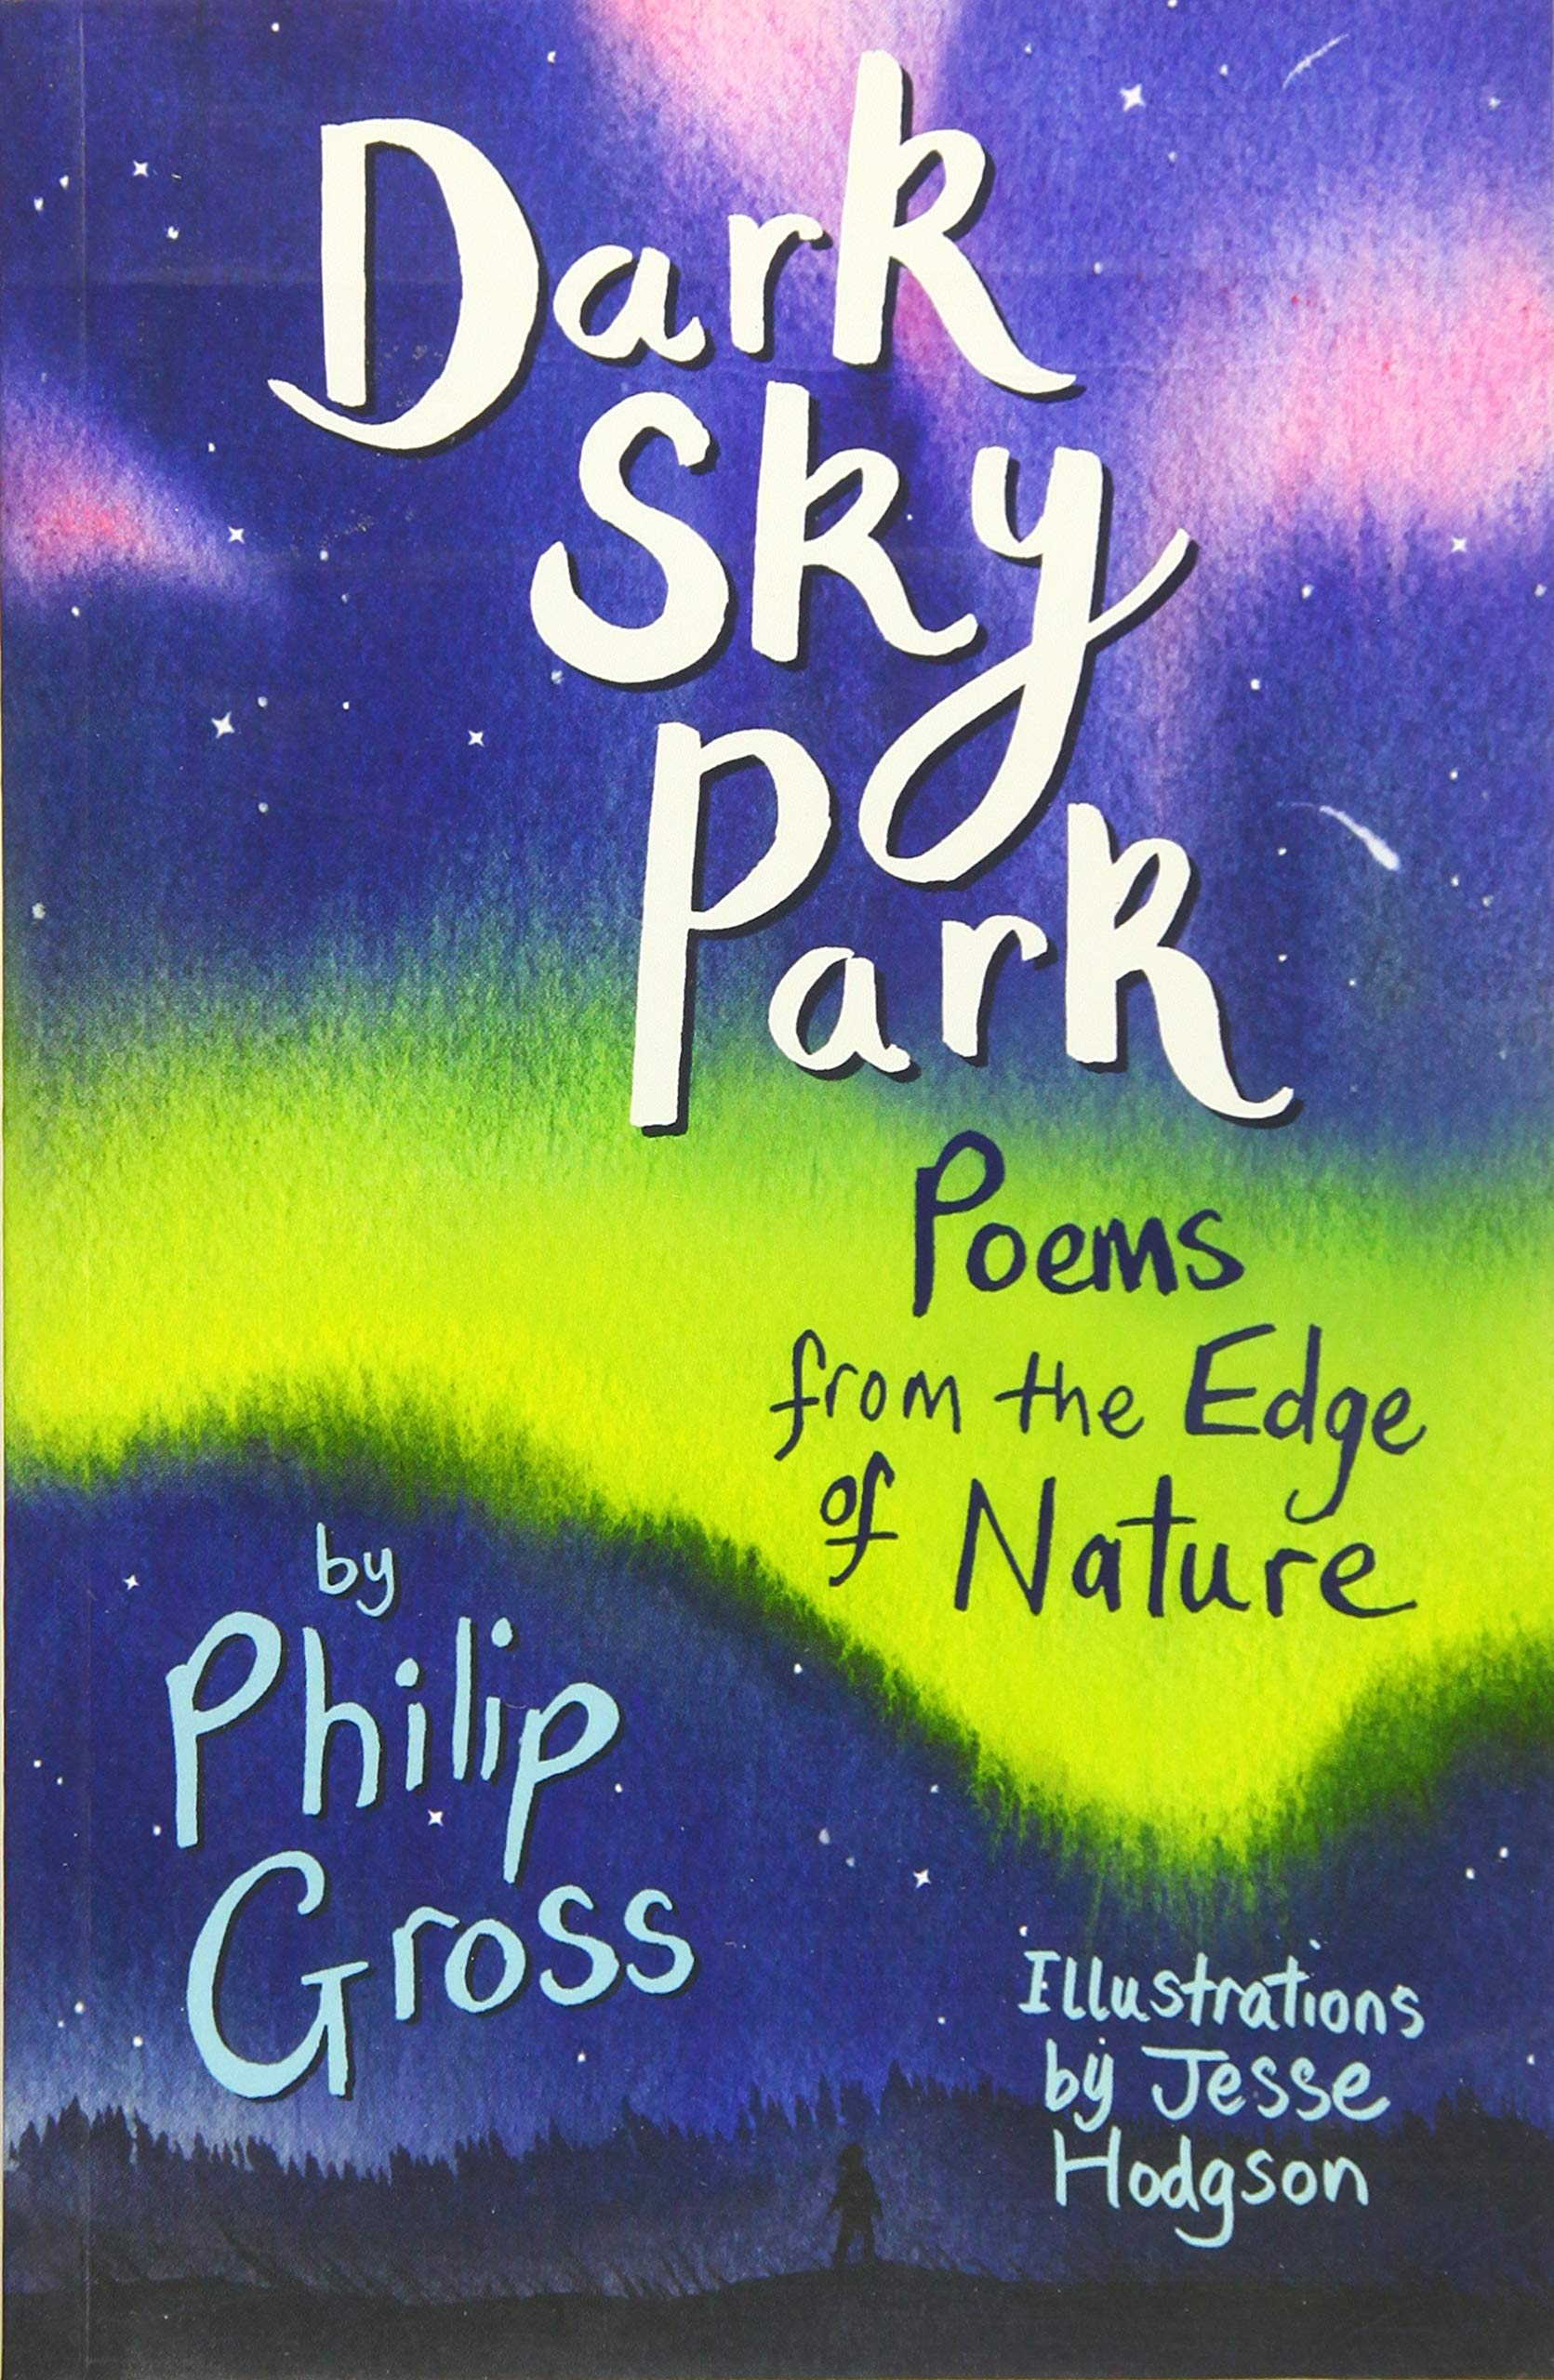 Dark Sky Park: Poems from the Edge of Nature: Amazon.co.uk: Gross, Philip,  Hodgson, Jesse: 9781910959886: Books